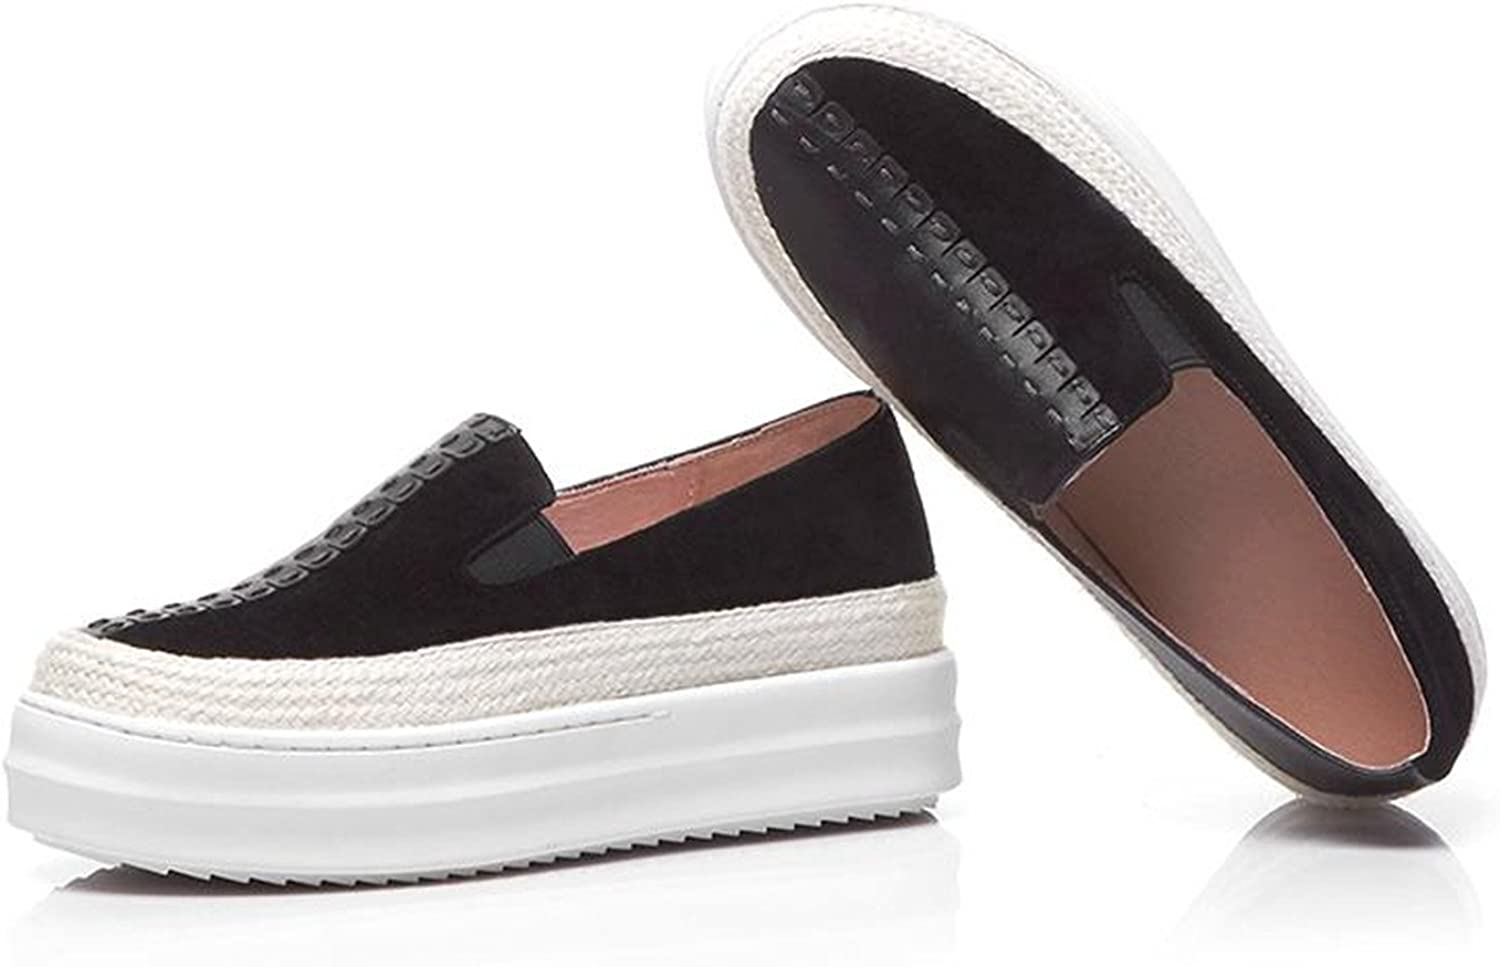 Dahanyi Stylish Pot Sheep Suede Mixed colors Slip on Superstar Round Toe Platform Causal shoes Runway Increased wome Vulcanized shoes